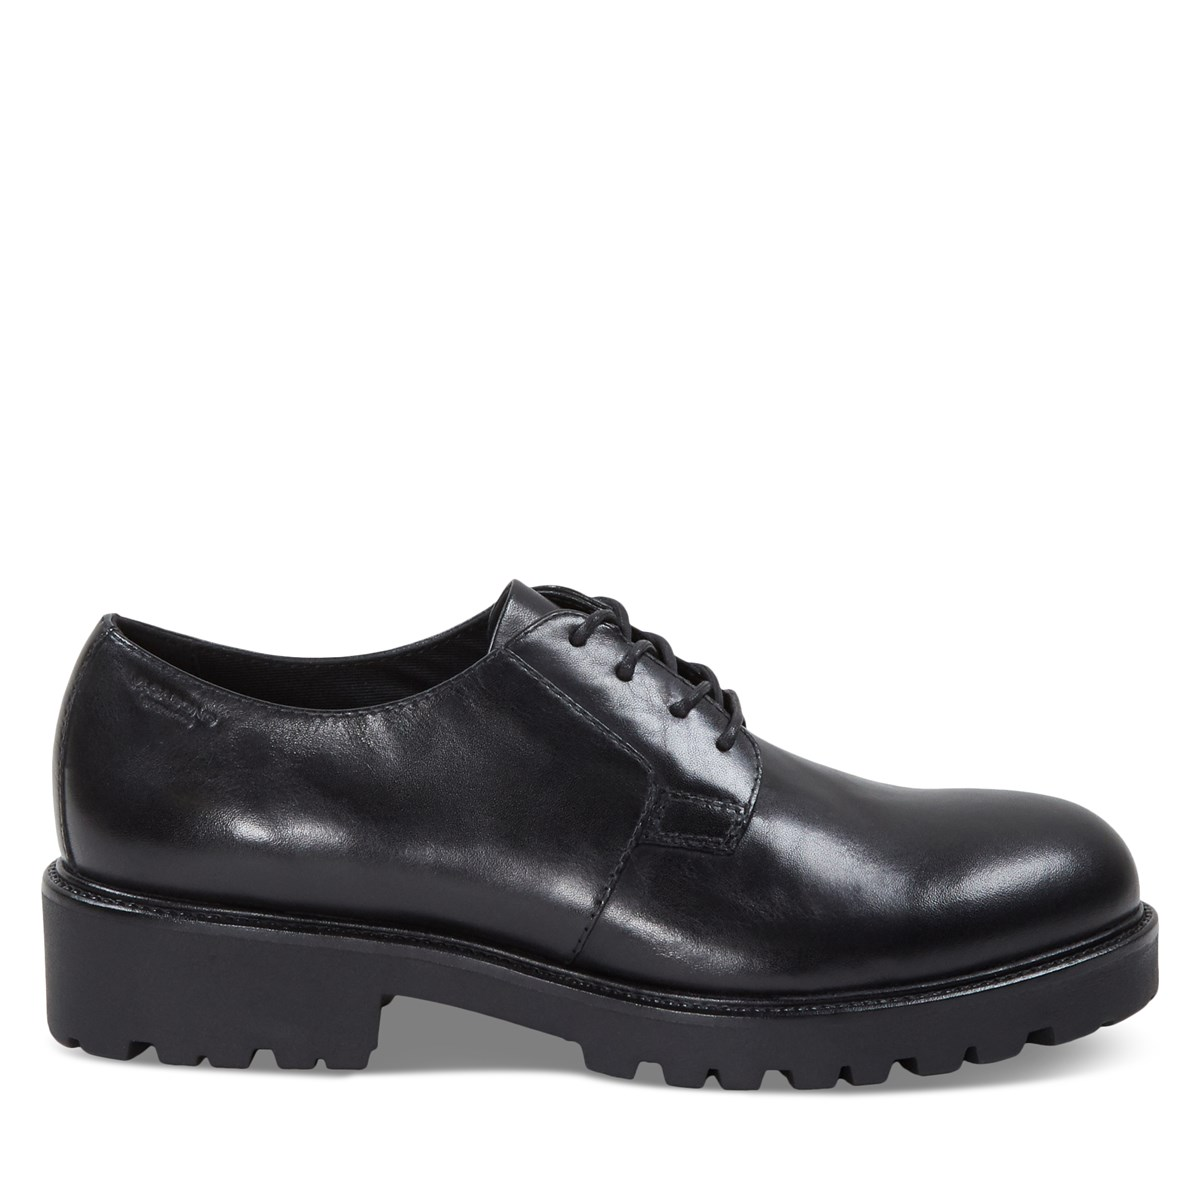 Women's Kenova Lace-Up Shoes in Black